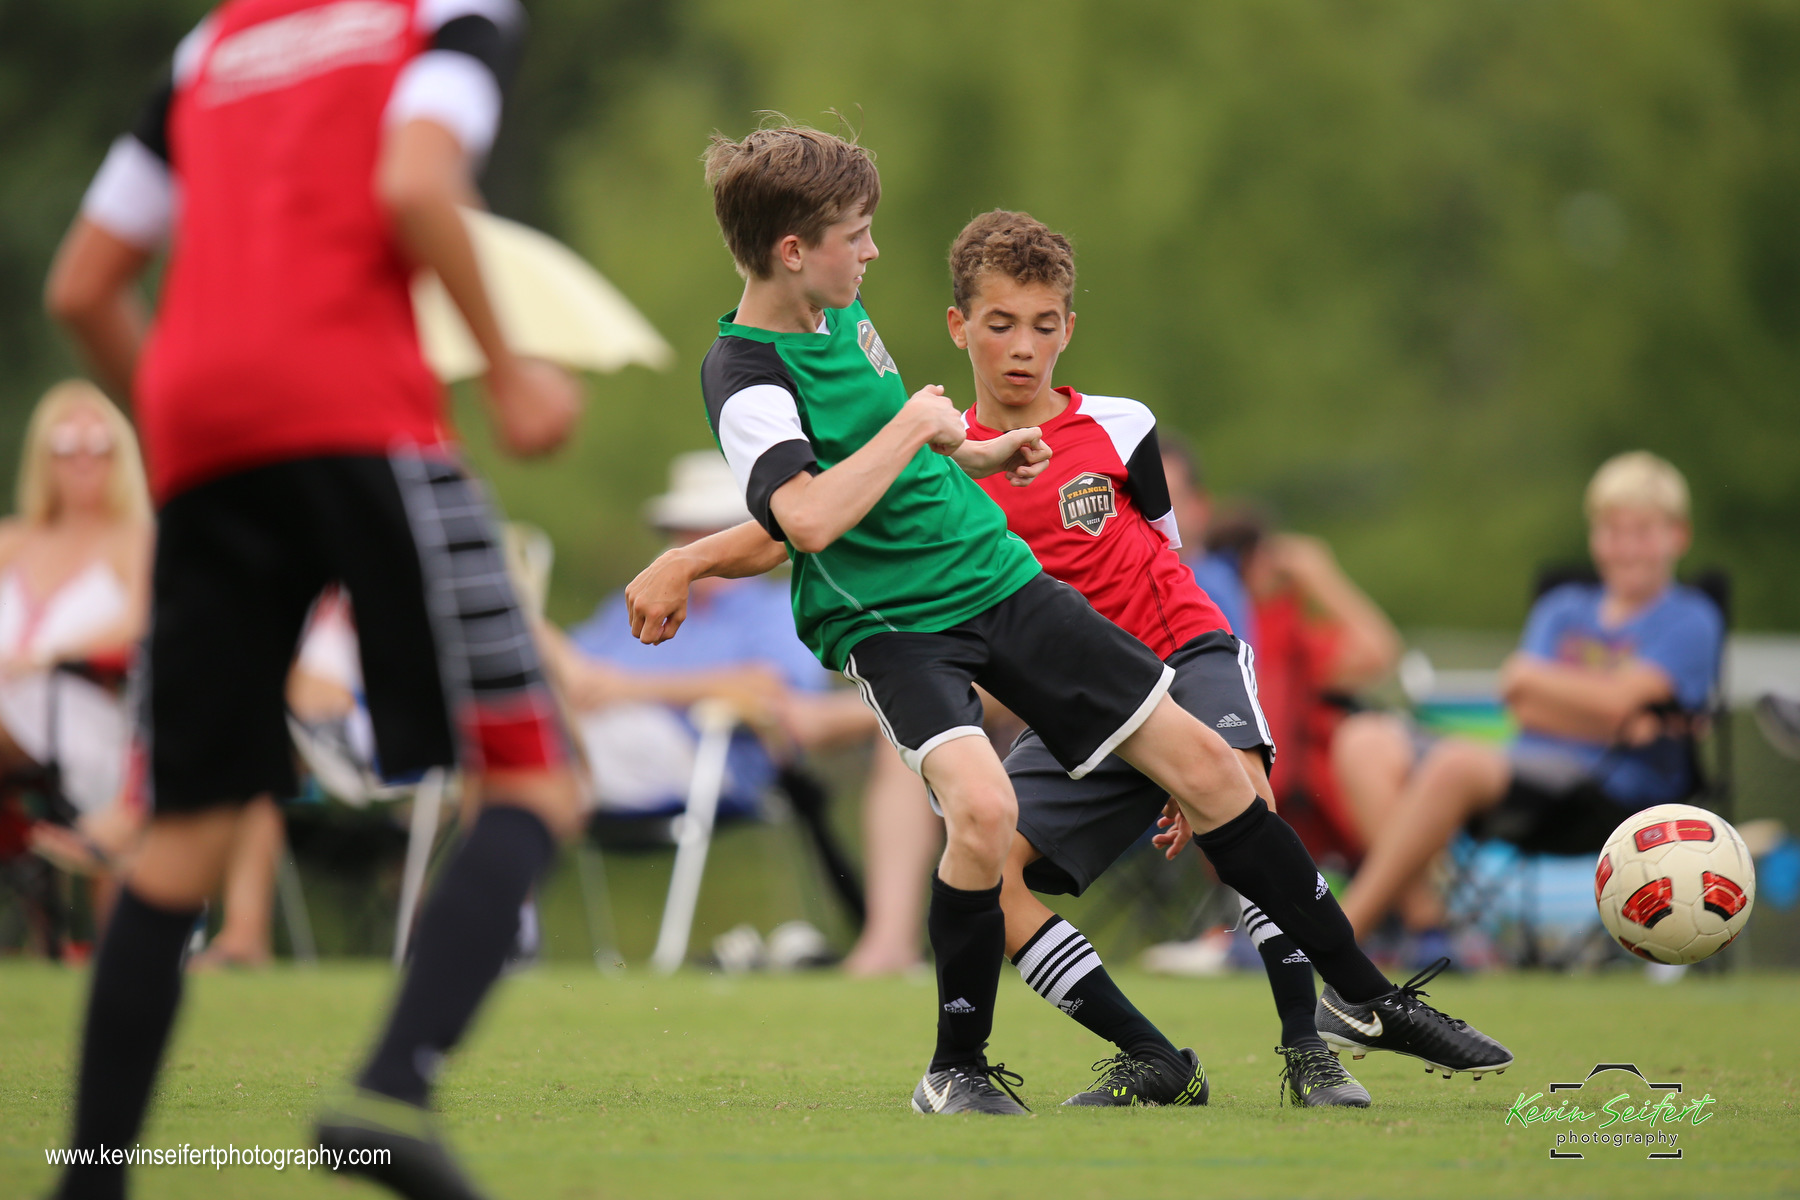 Green Squirrels U-15 Youth Soccer Woodcroft Triangle United